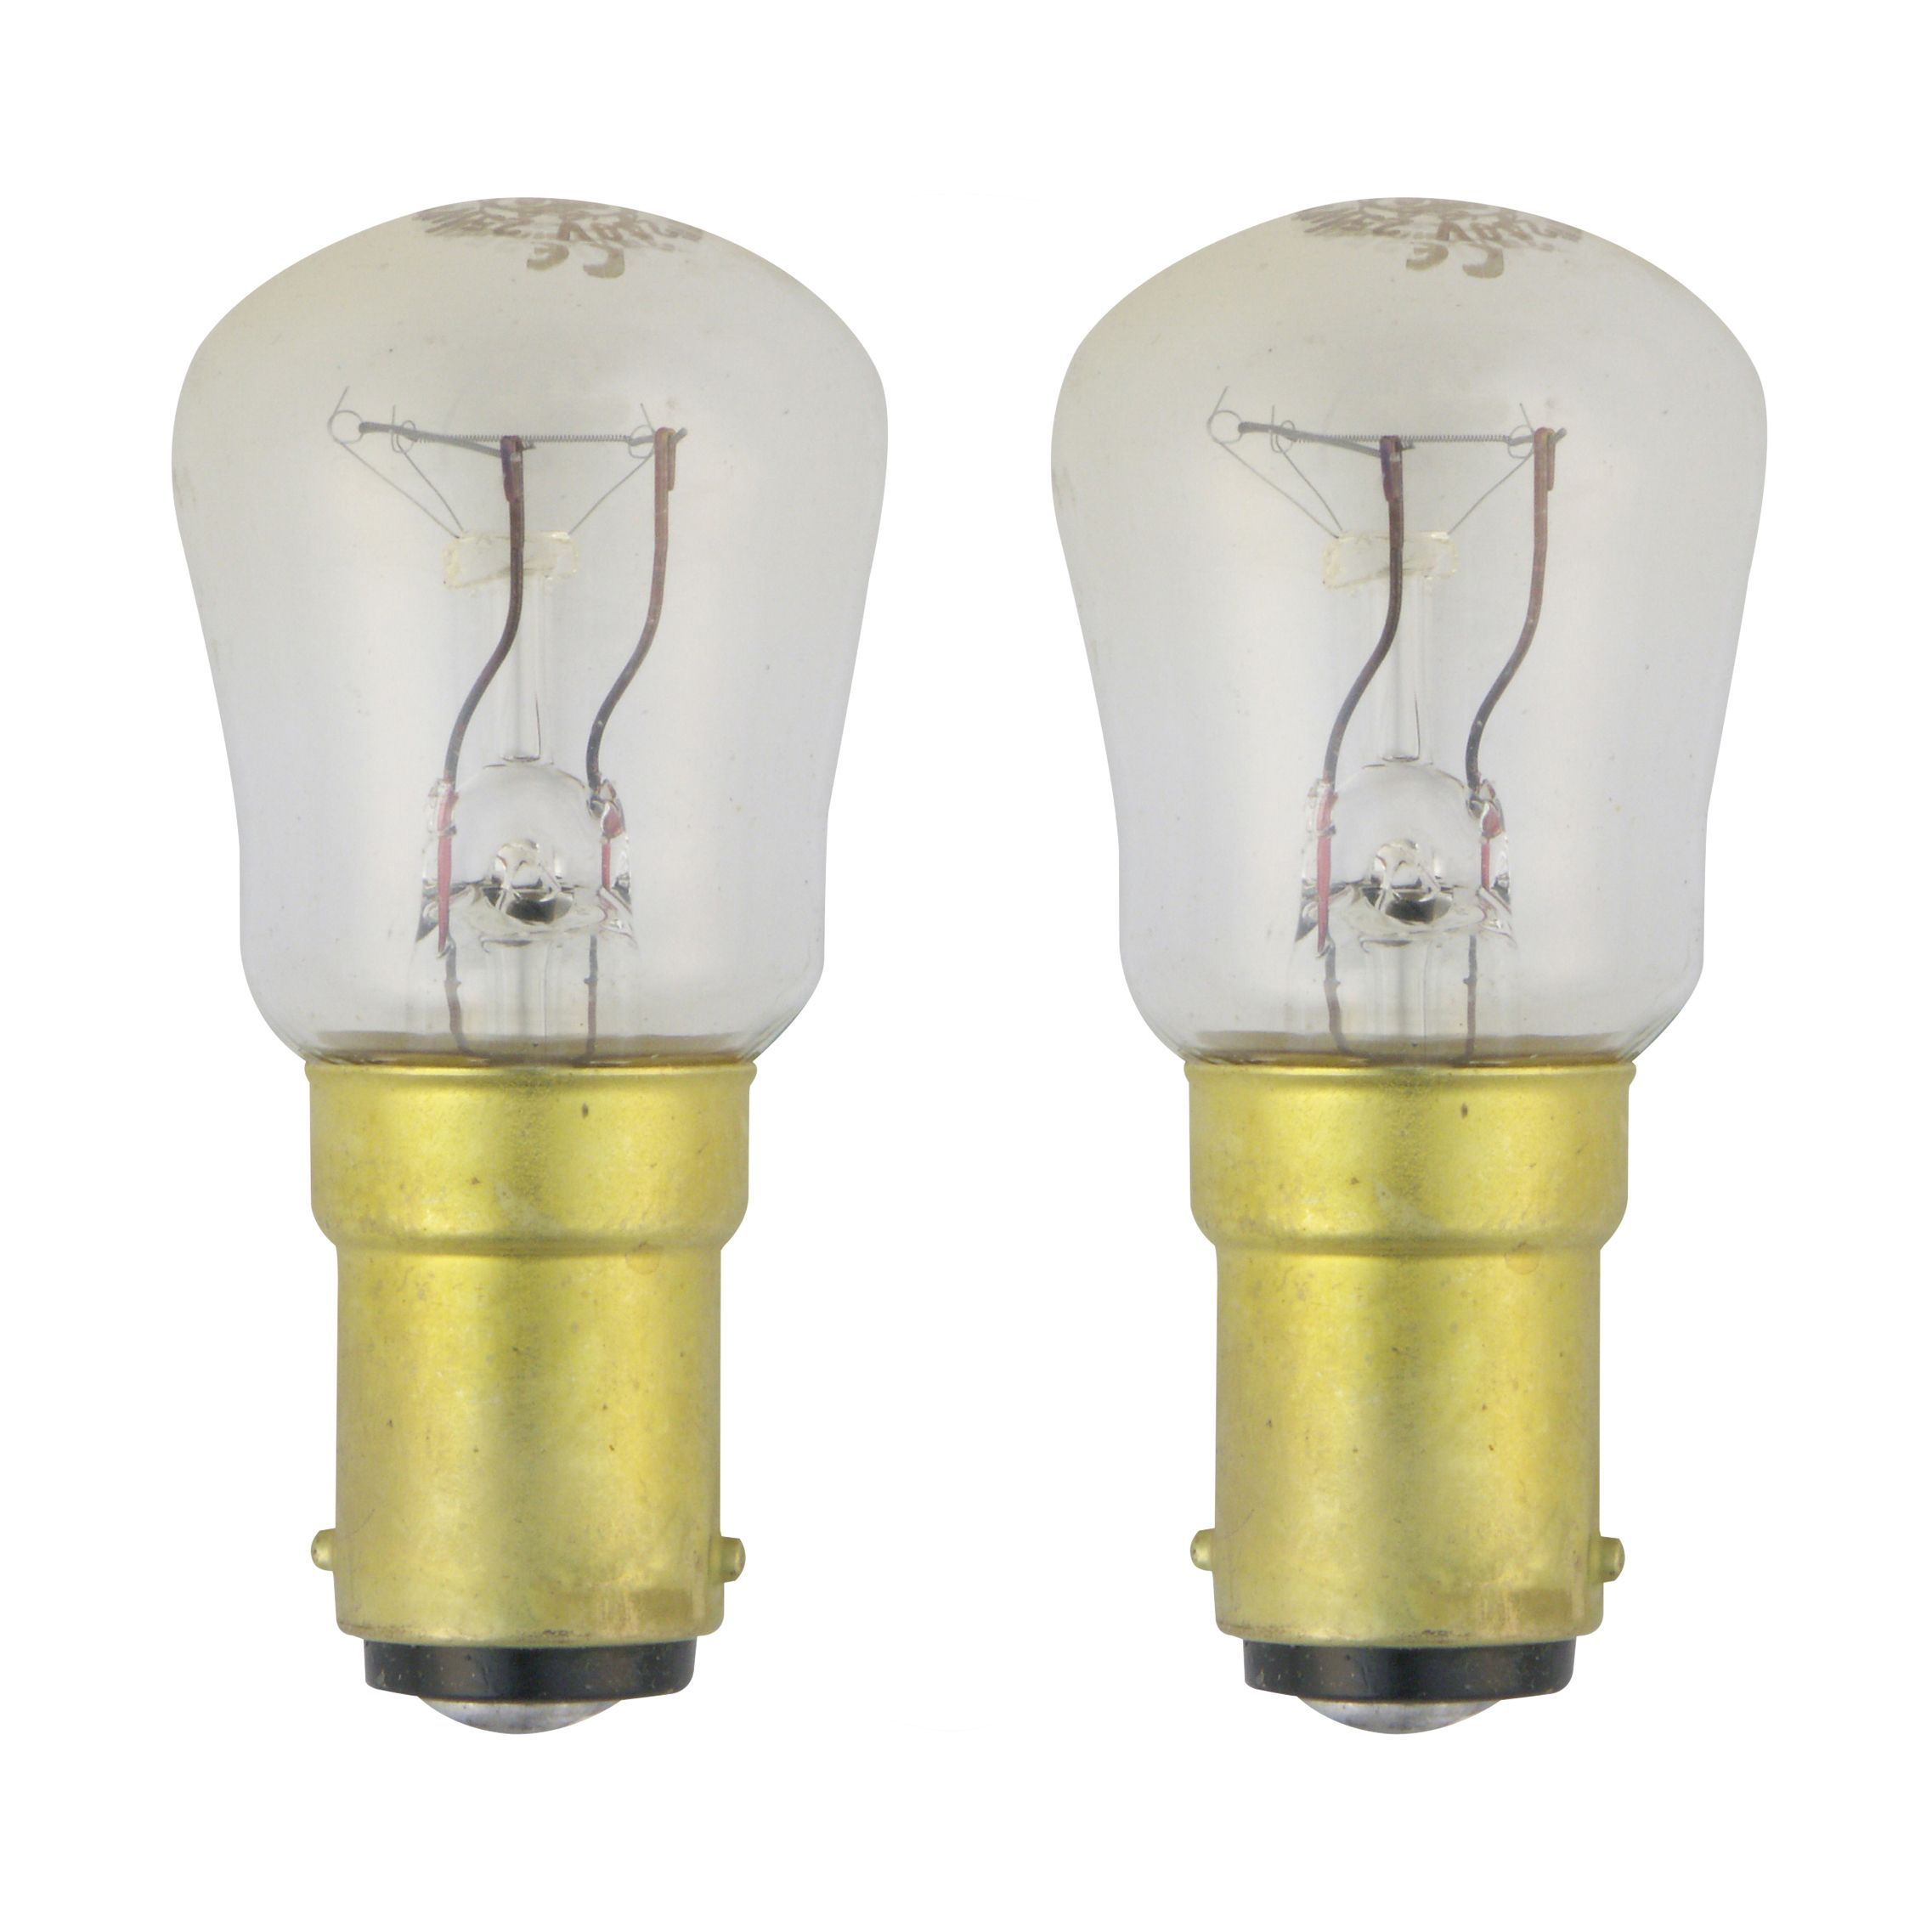 GE B15 15W Incandescent Dimmable GLS Light Bulb